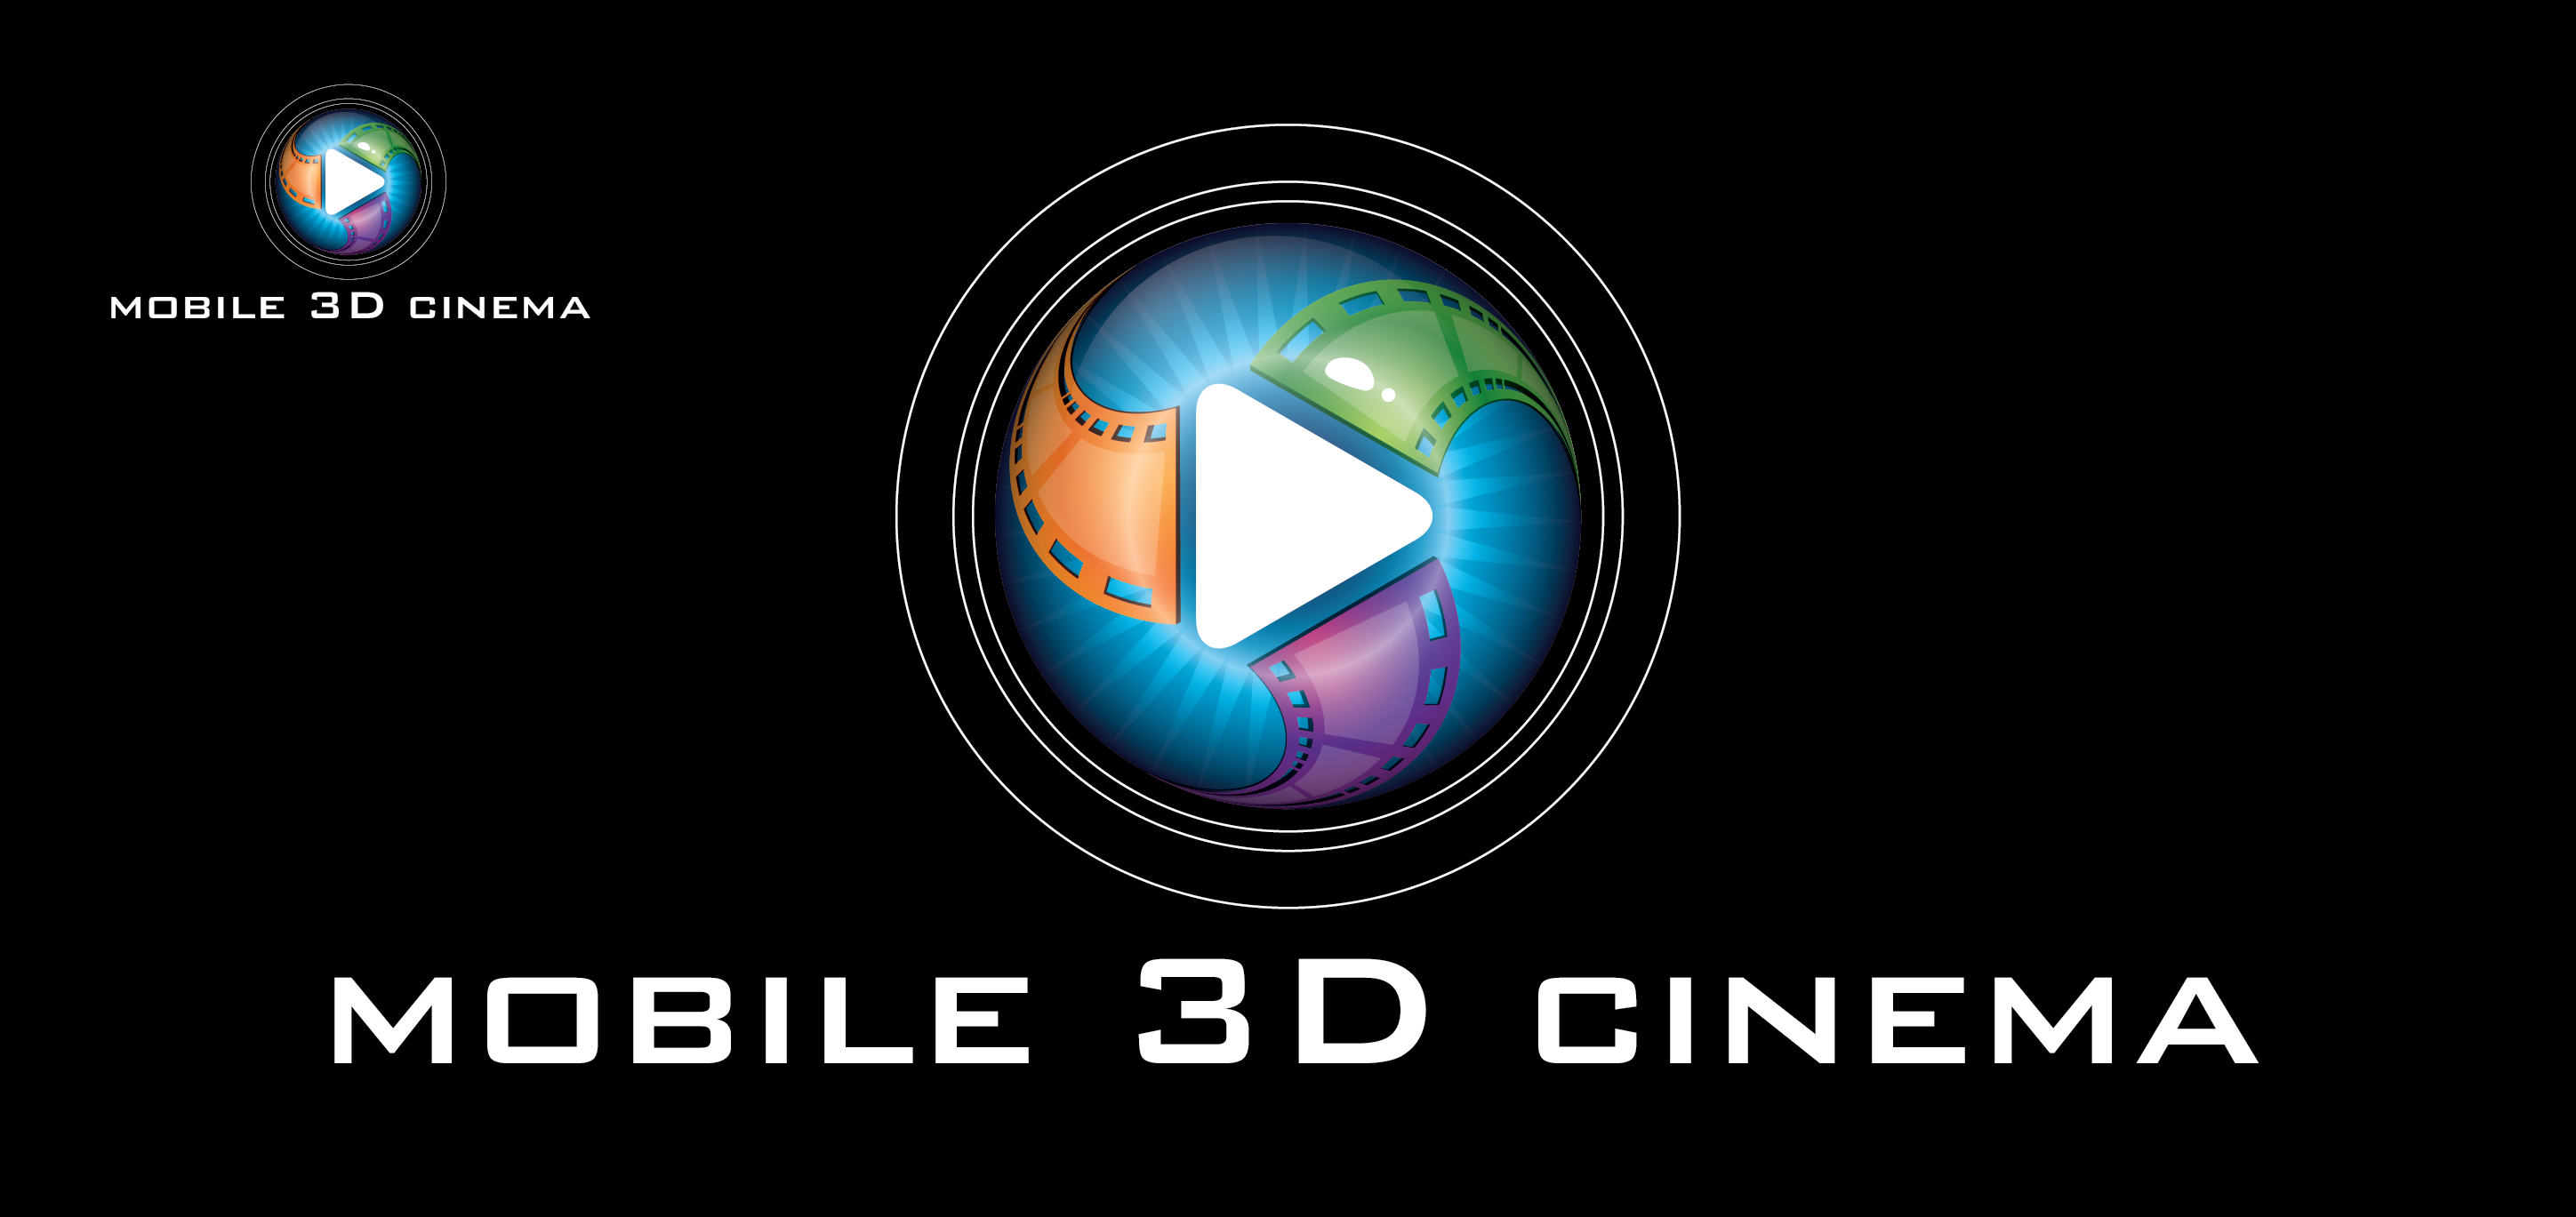 Mobile 3D cinema